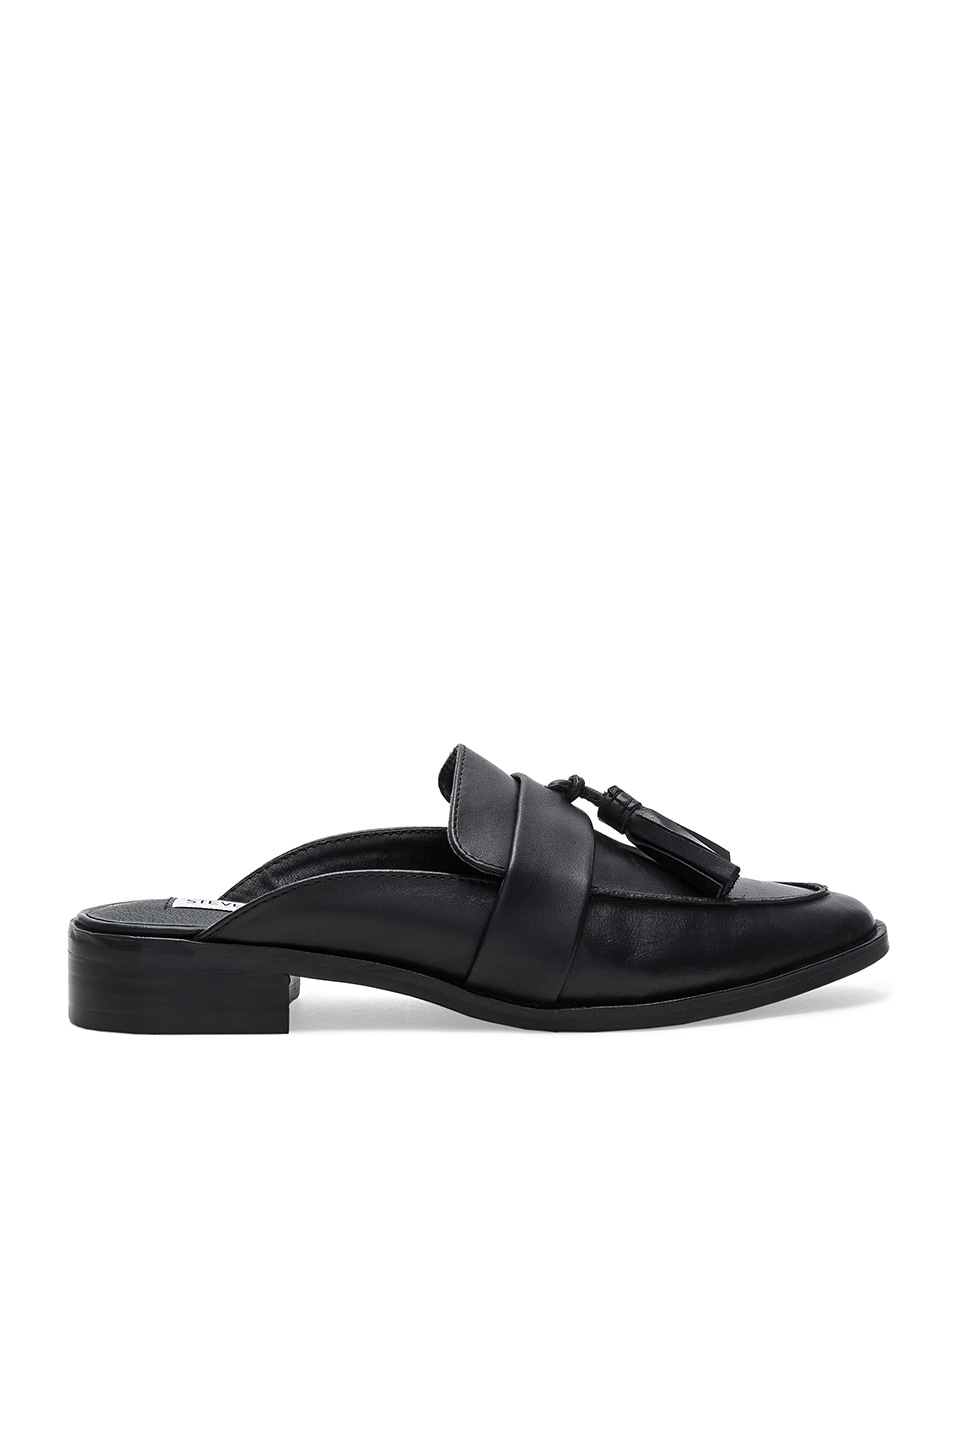 Steve Madden Magan Mule in Black Leather